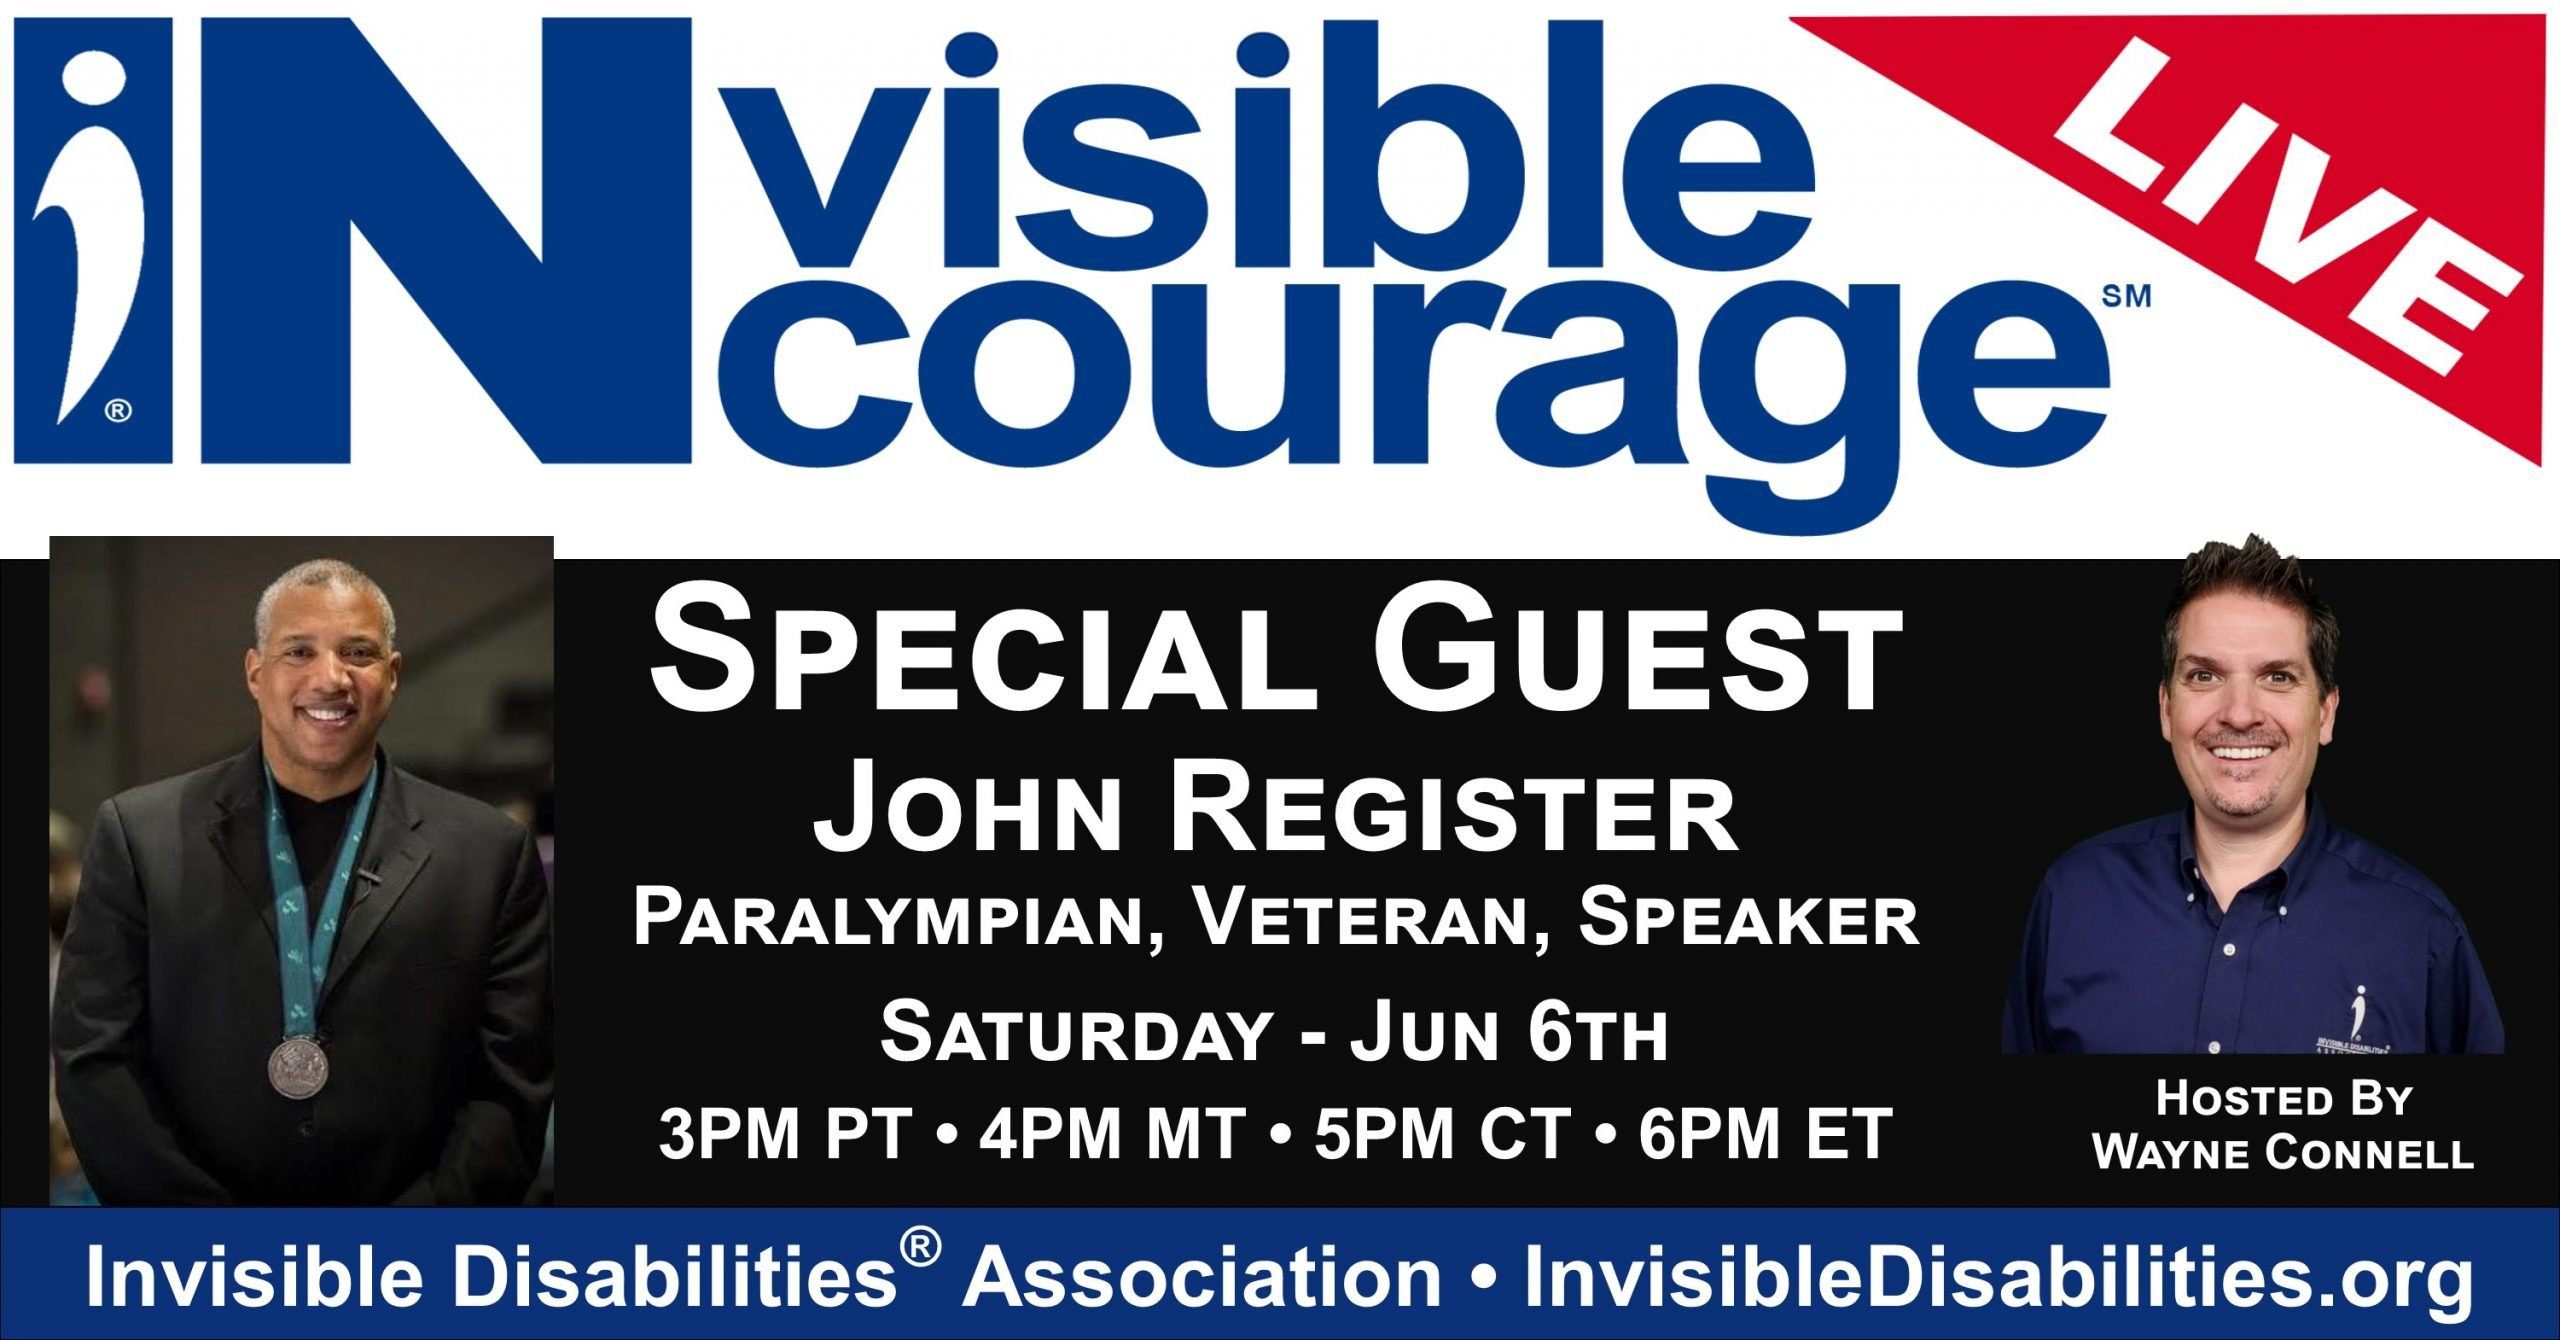 InVisible InCourage Live with John Register, Paralympian, Speaker , Author, Veteran - Invisible Disabilities Association